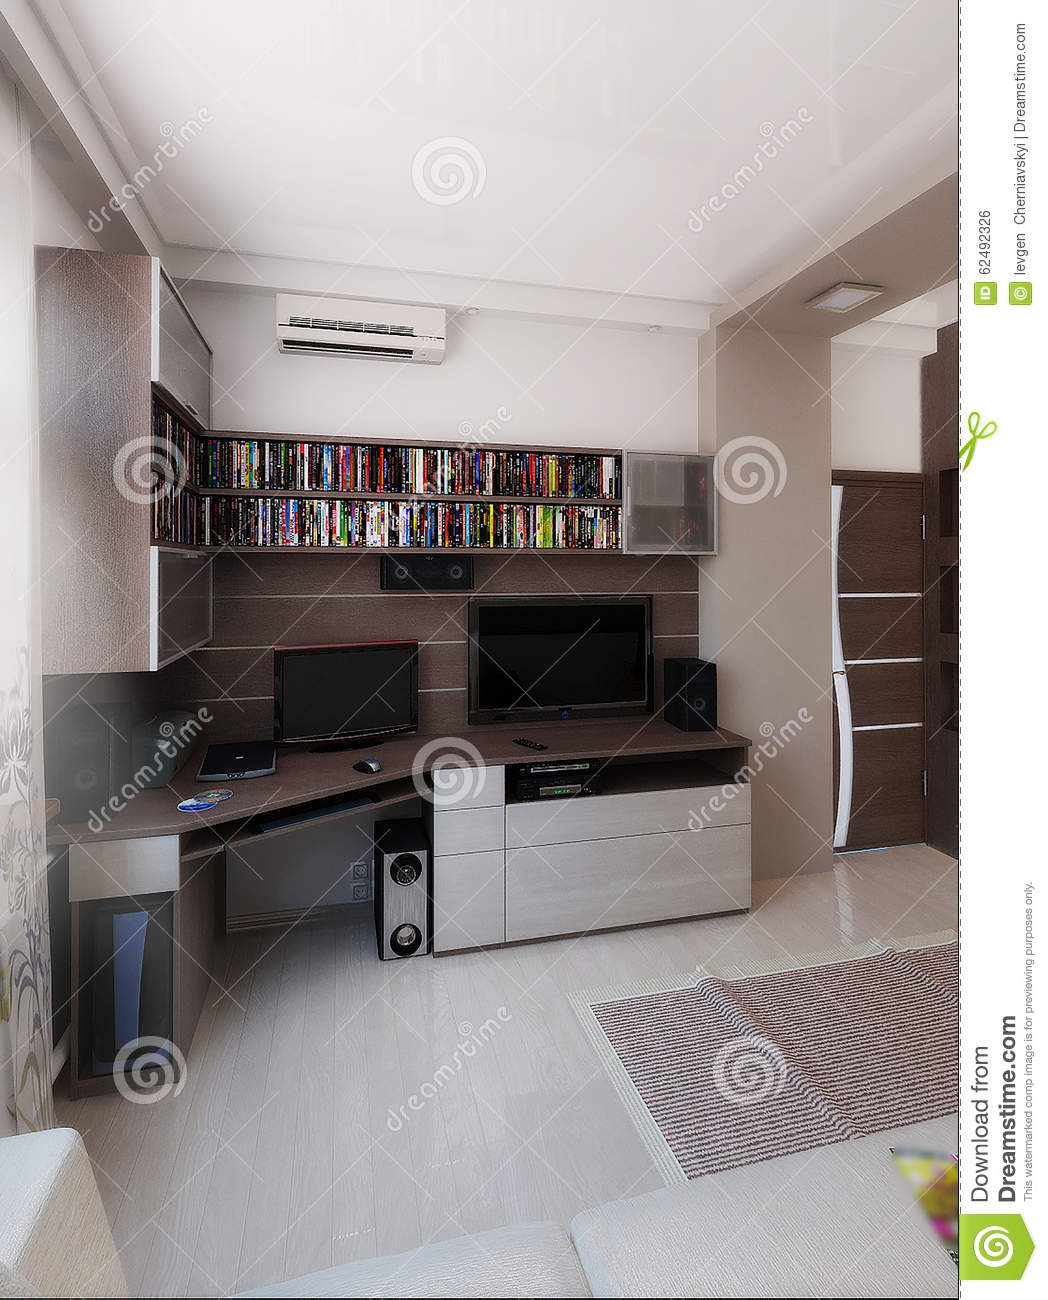 Young Man Bedroom Ideas young man bedroom, interior design, render 3d stock illustration